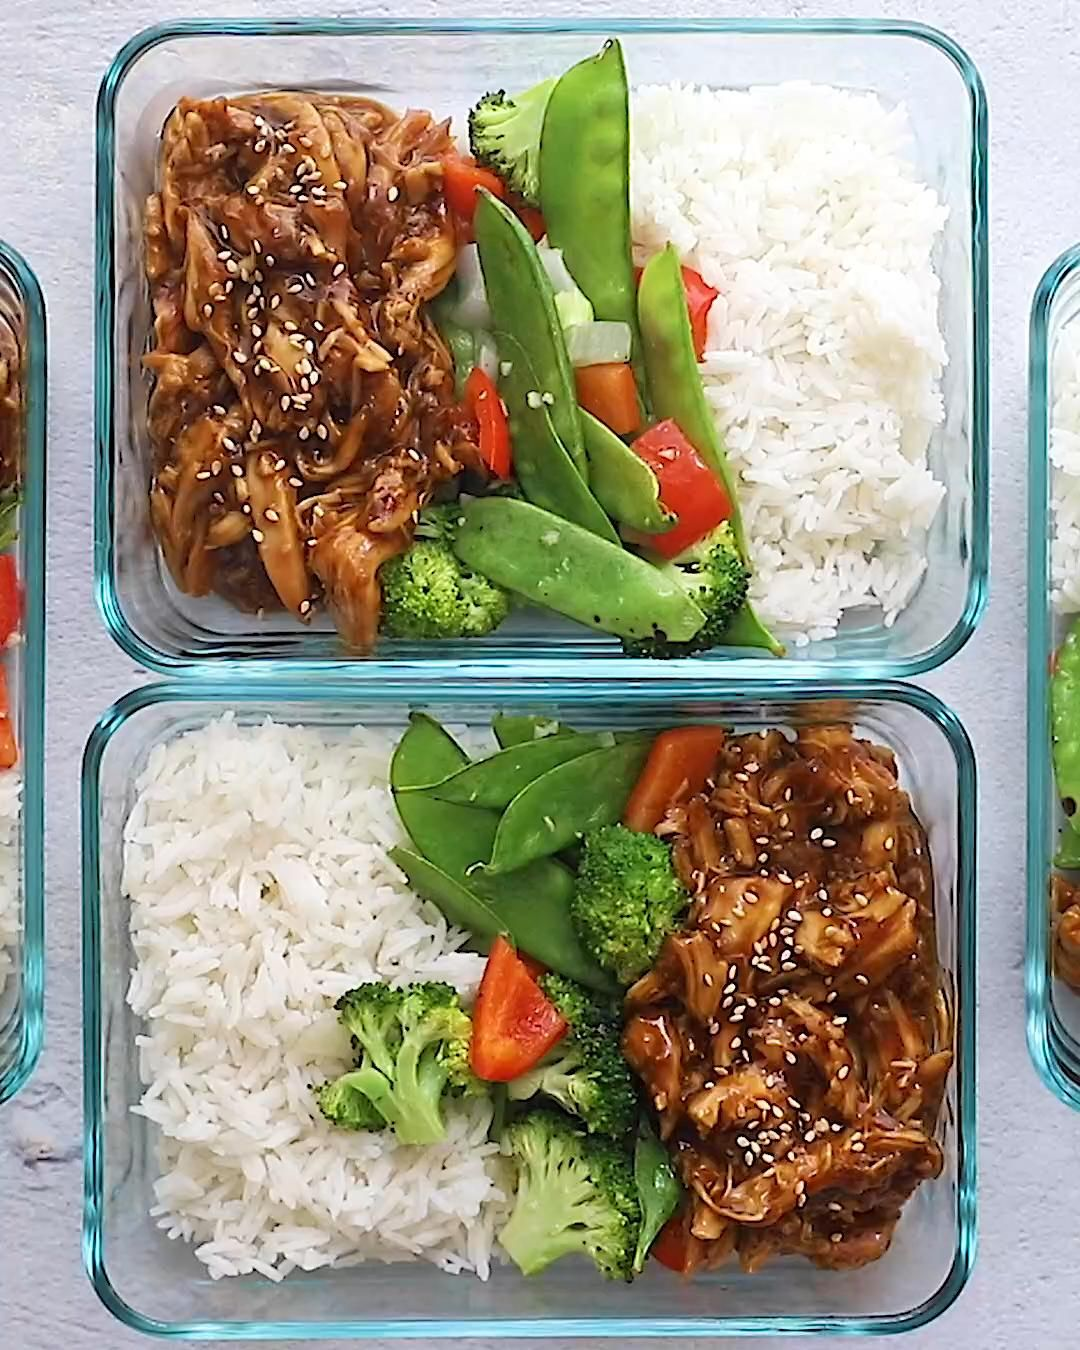 Crock Pot Teriyaki Chicken - Meal Prep Recipes -   18 meal prep recipes for weight loss keto ideas